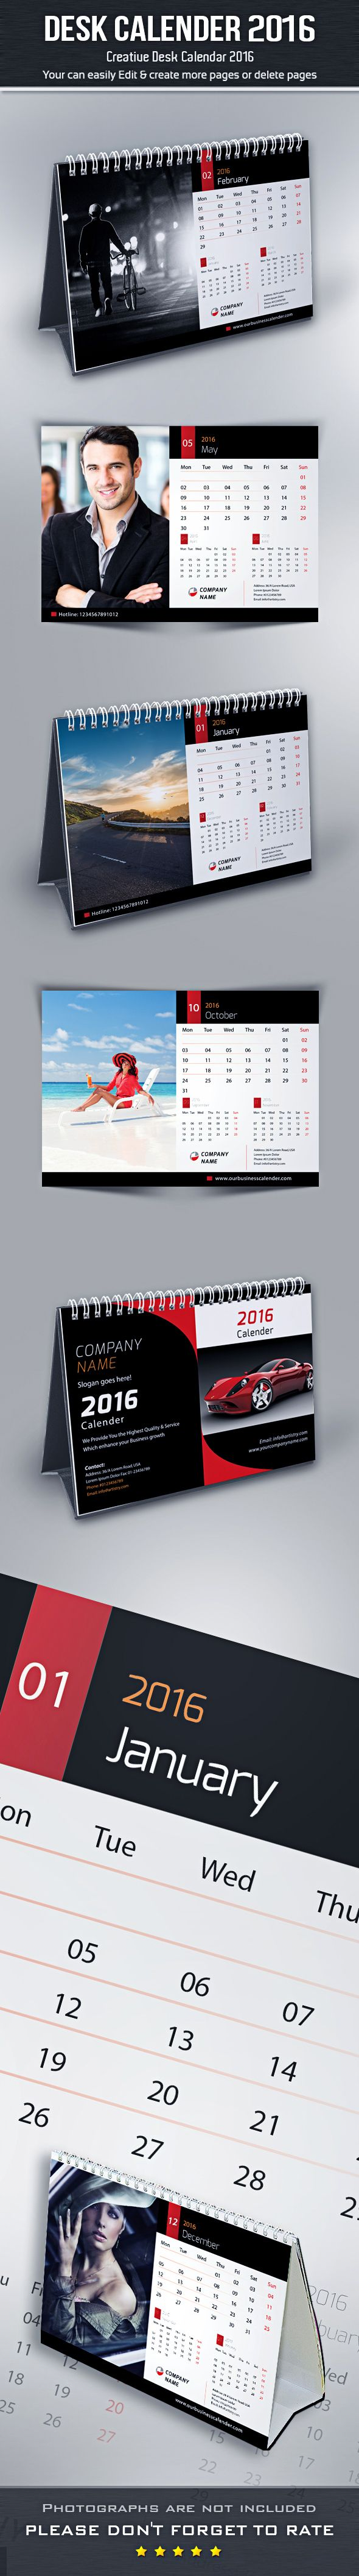 http://graphicriver.net/item/desk-calendar-2016-/12677515